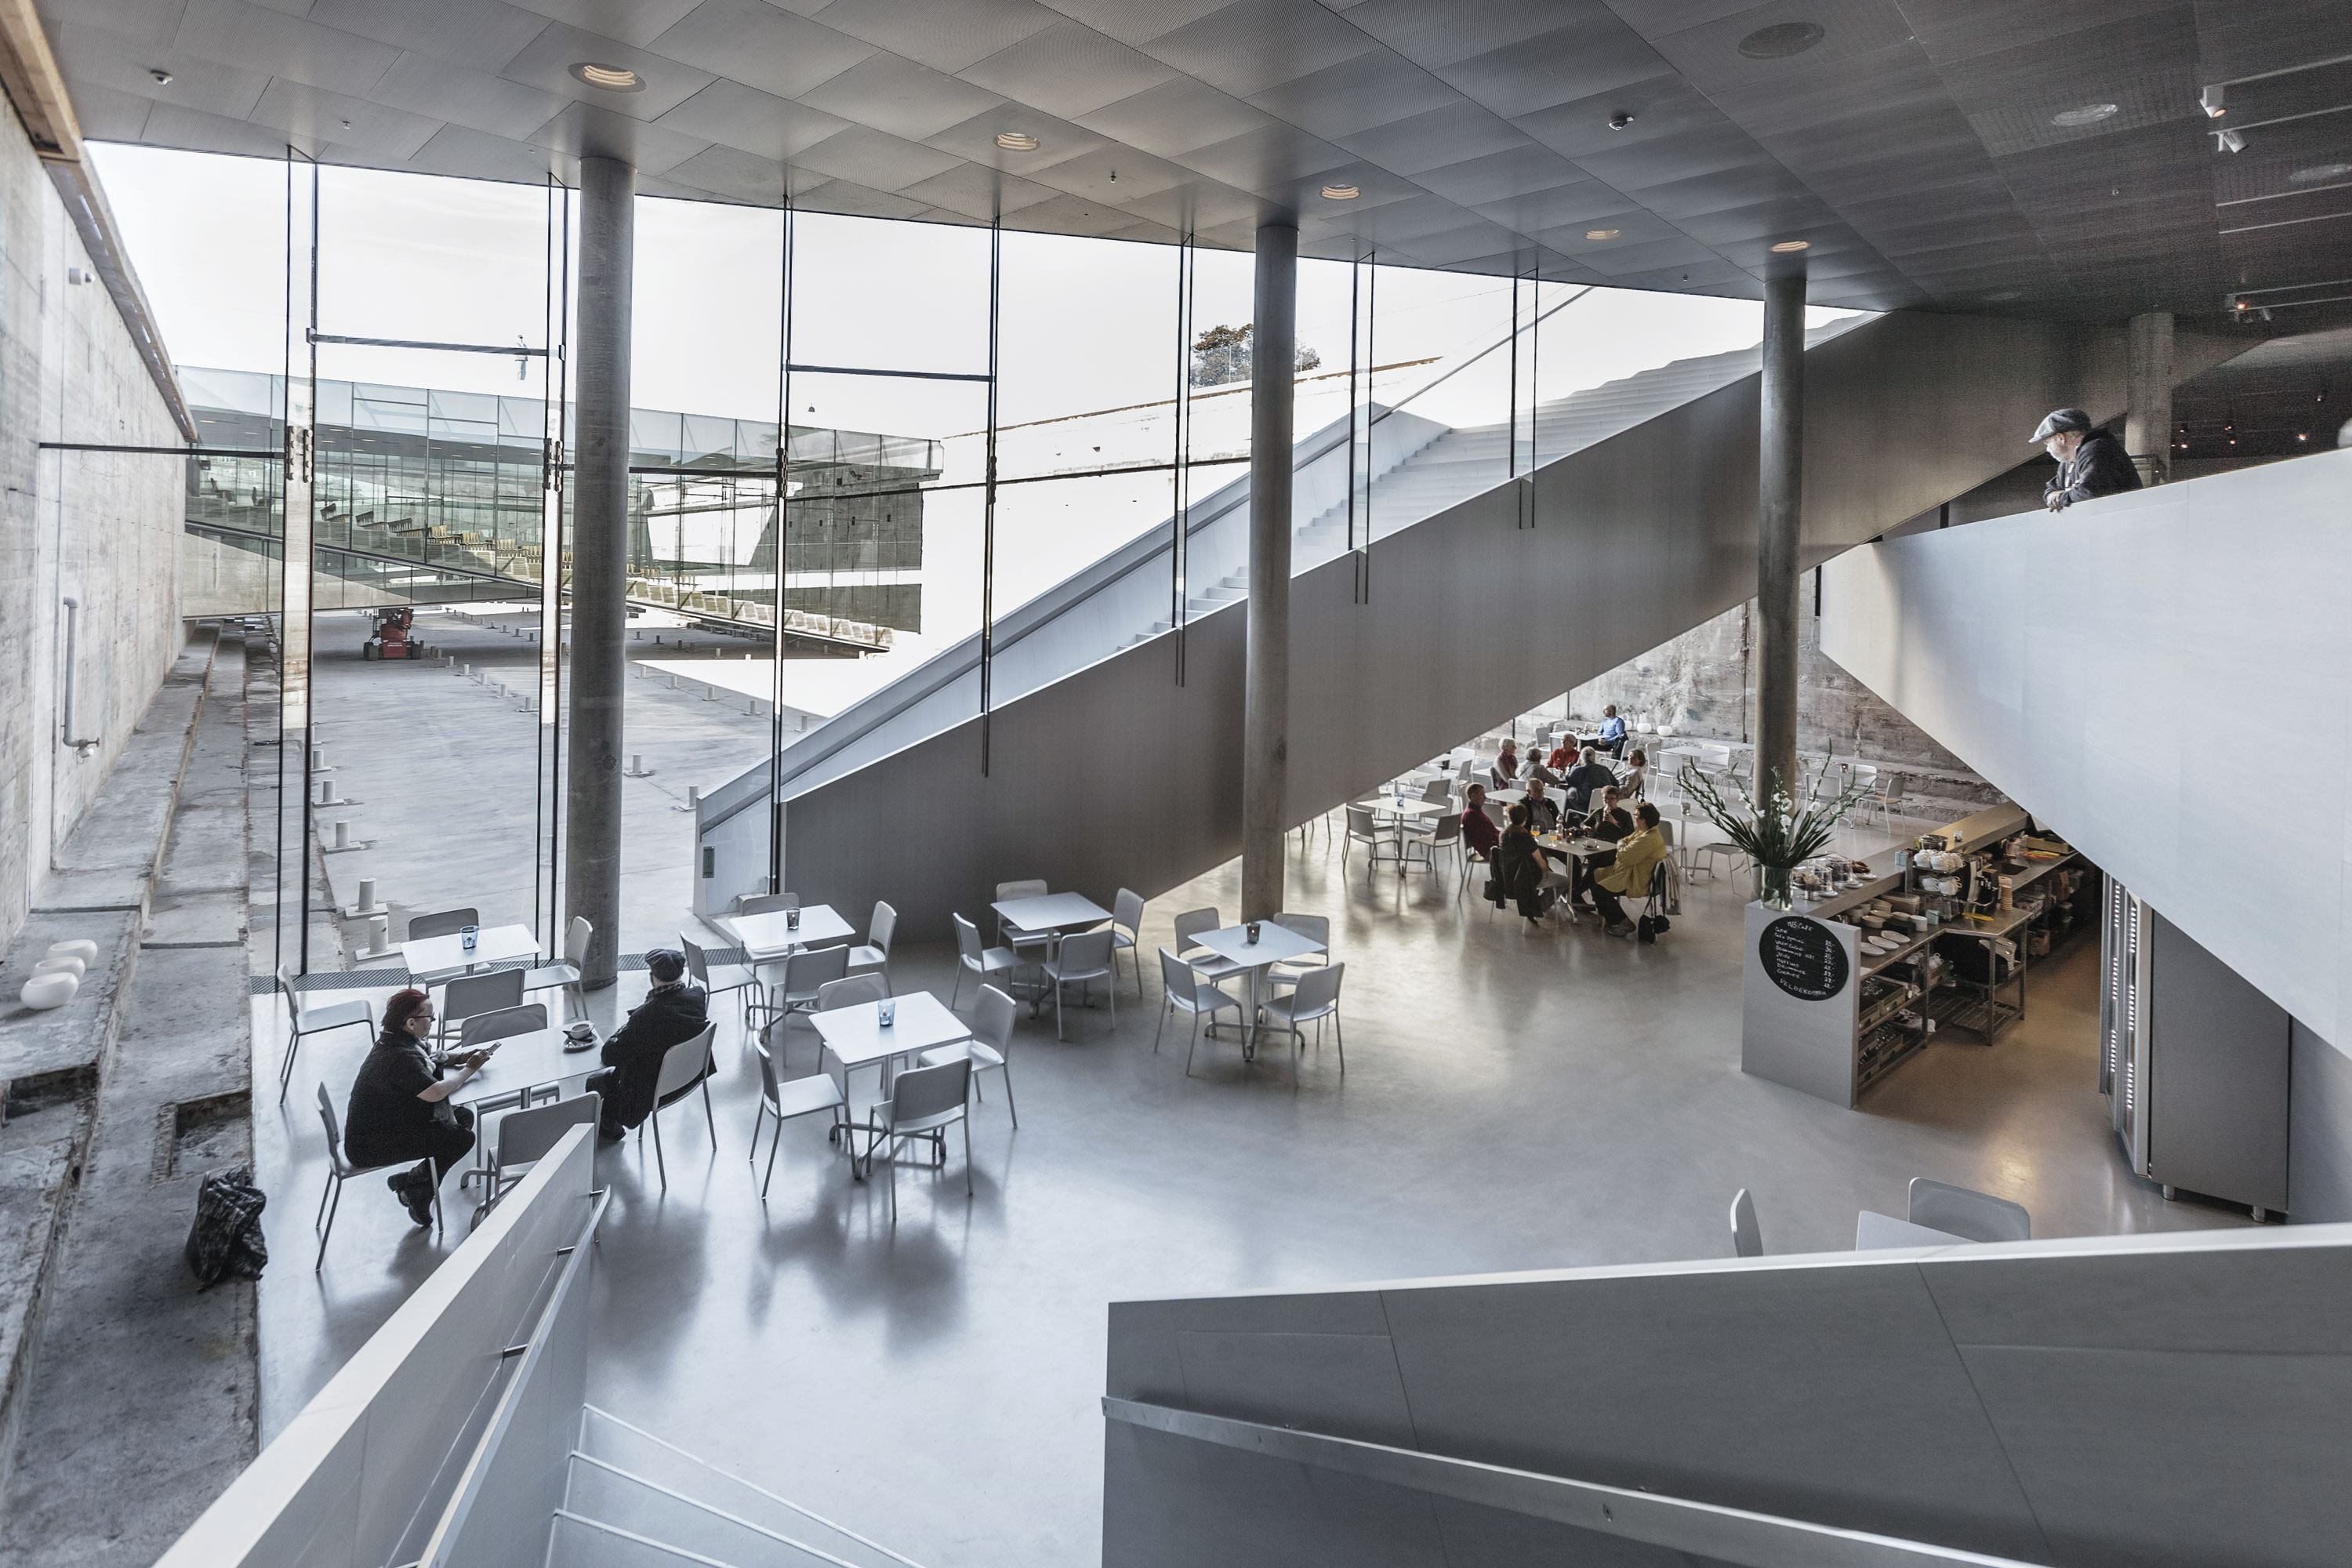 Danish maritime museum architect magazine cultural for Big bjarke ingels group